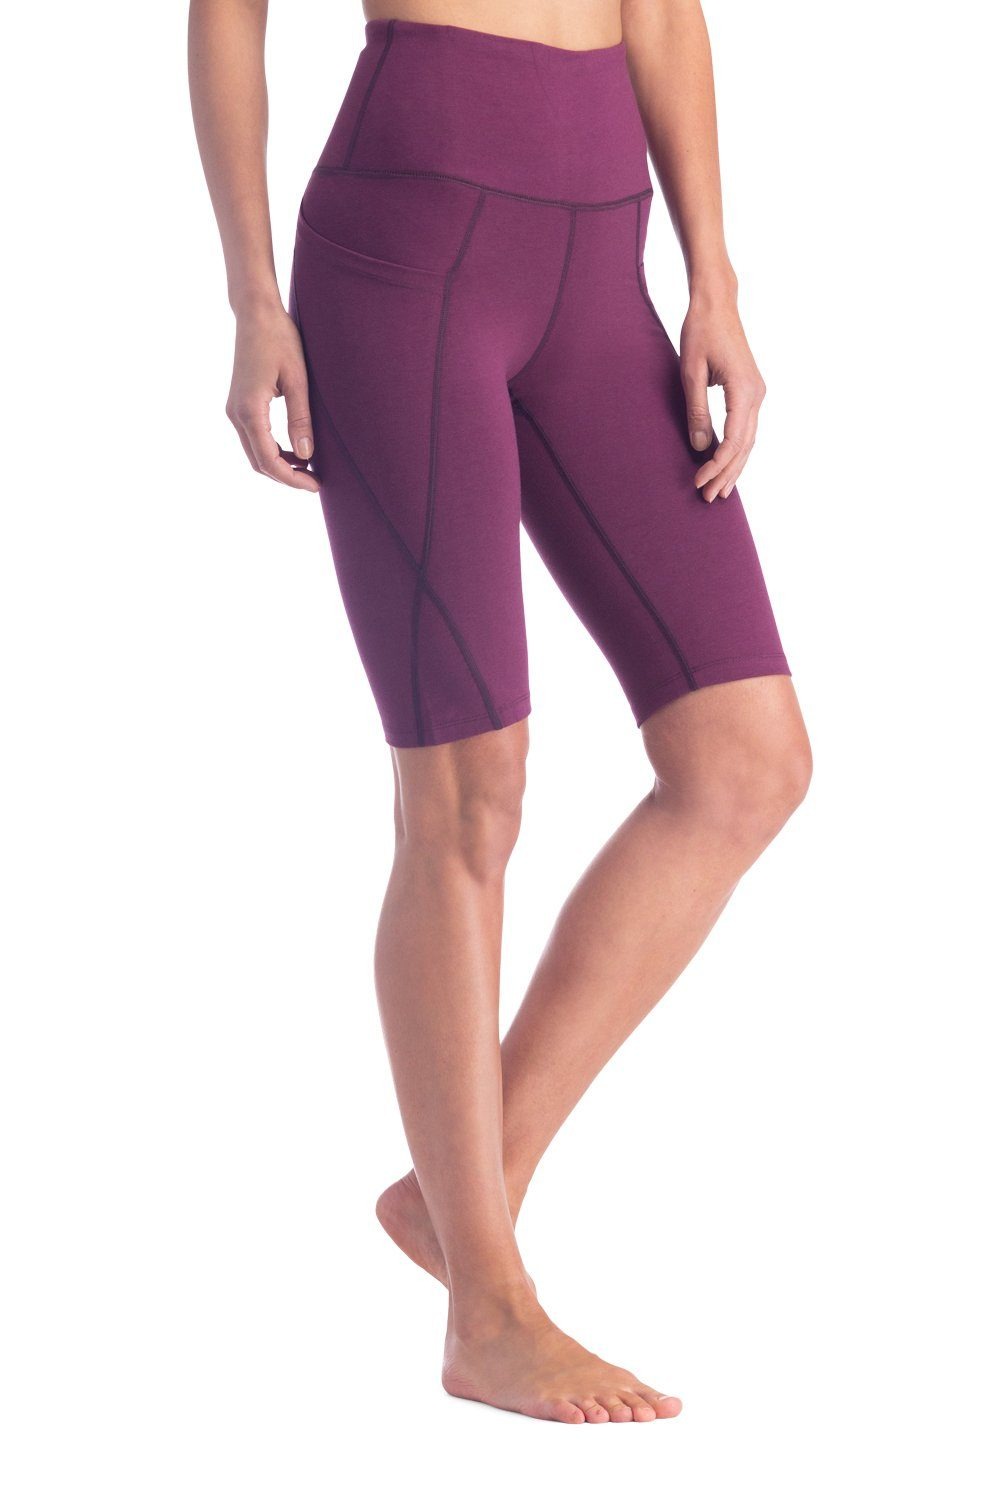 "Women's EcoFabric™ Active 9"" Workout Short - Fishers Finery"